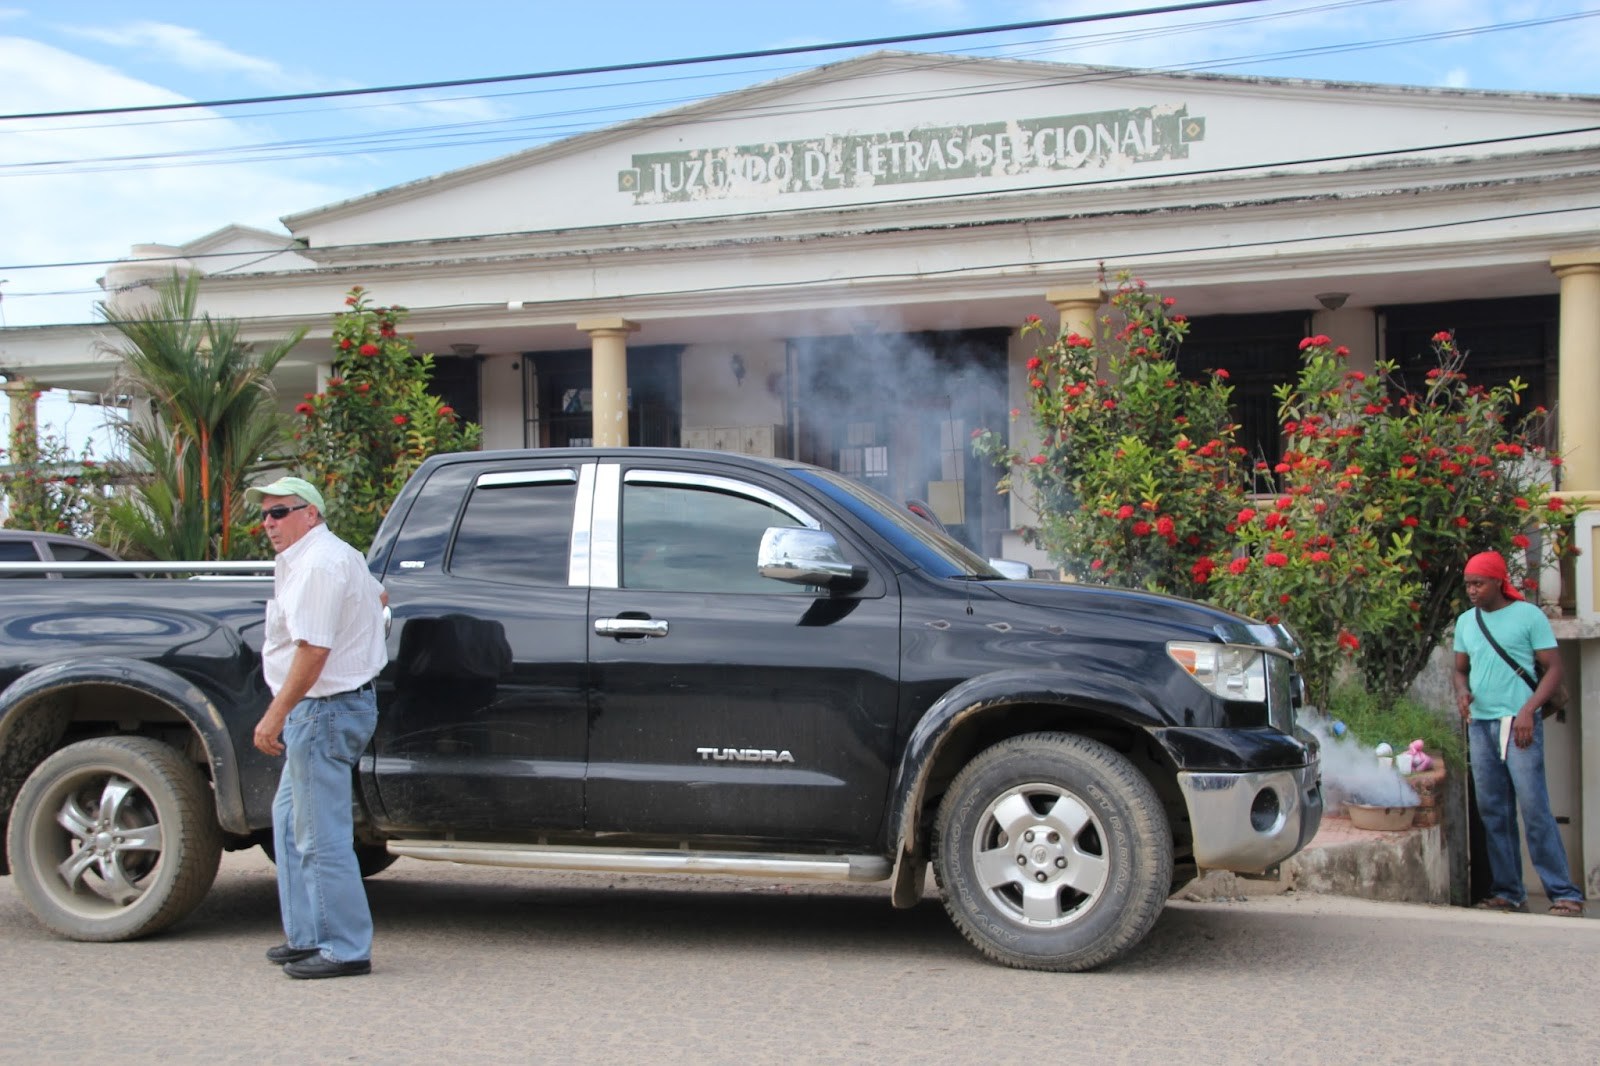 """Photo caption: Canadian """"Porn King"""" Randy Jorgensen charged with illegal possession of land arrives to the courthouse in Trujillo, Honduras."""